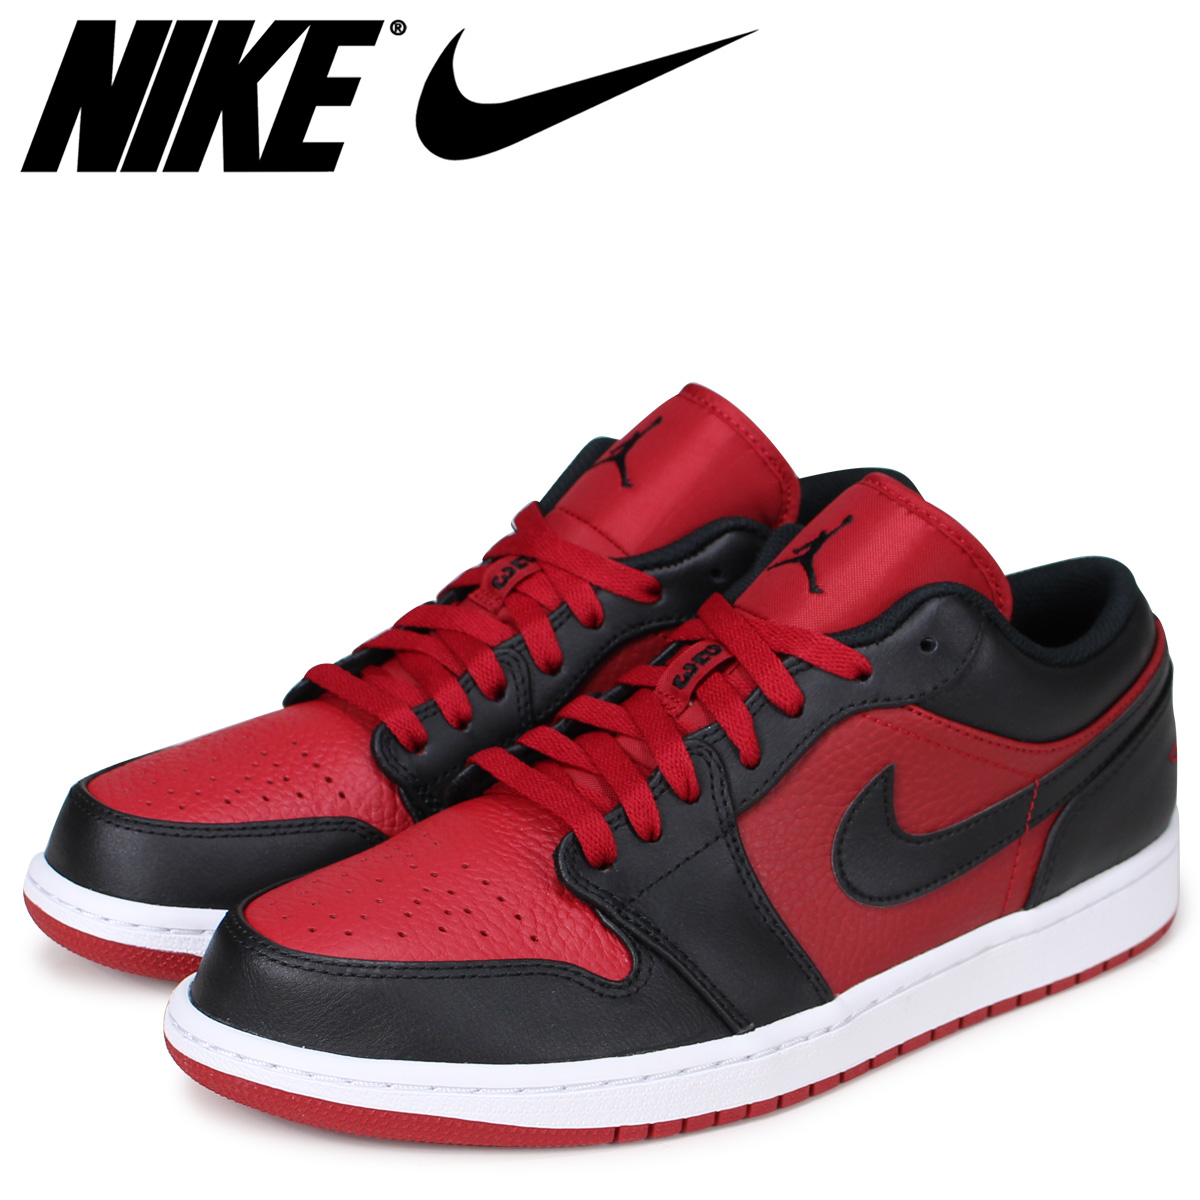 Sugar Online Shop  NIKE Nike Air Jordan 1 sneakers men AIR JORDAN 1 ... 8aa59c39db91